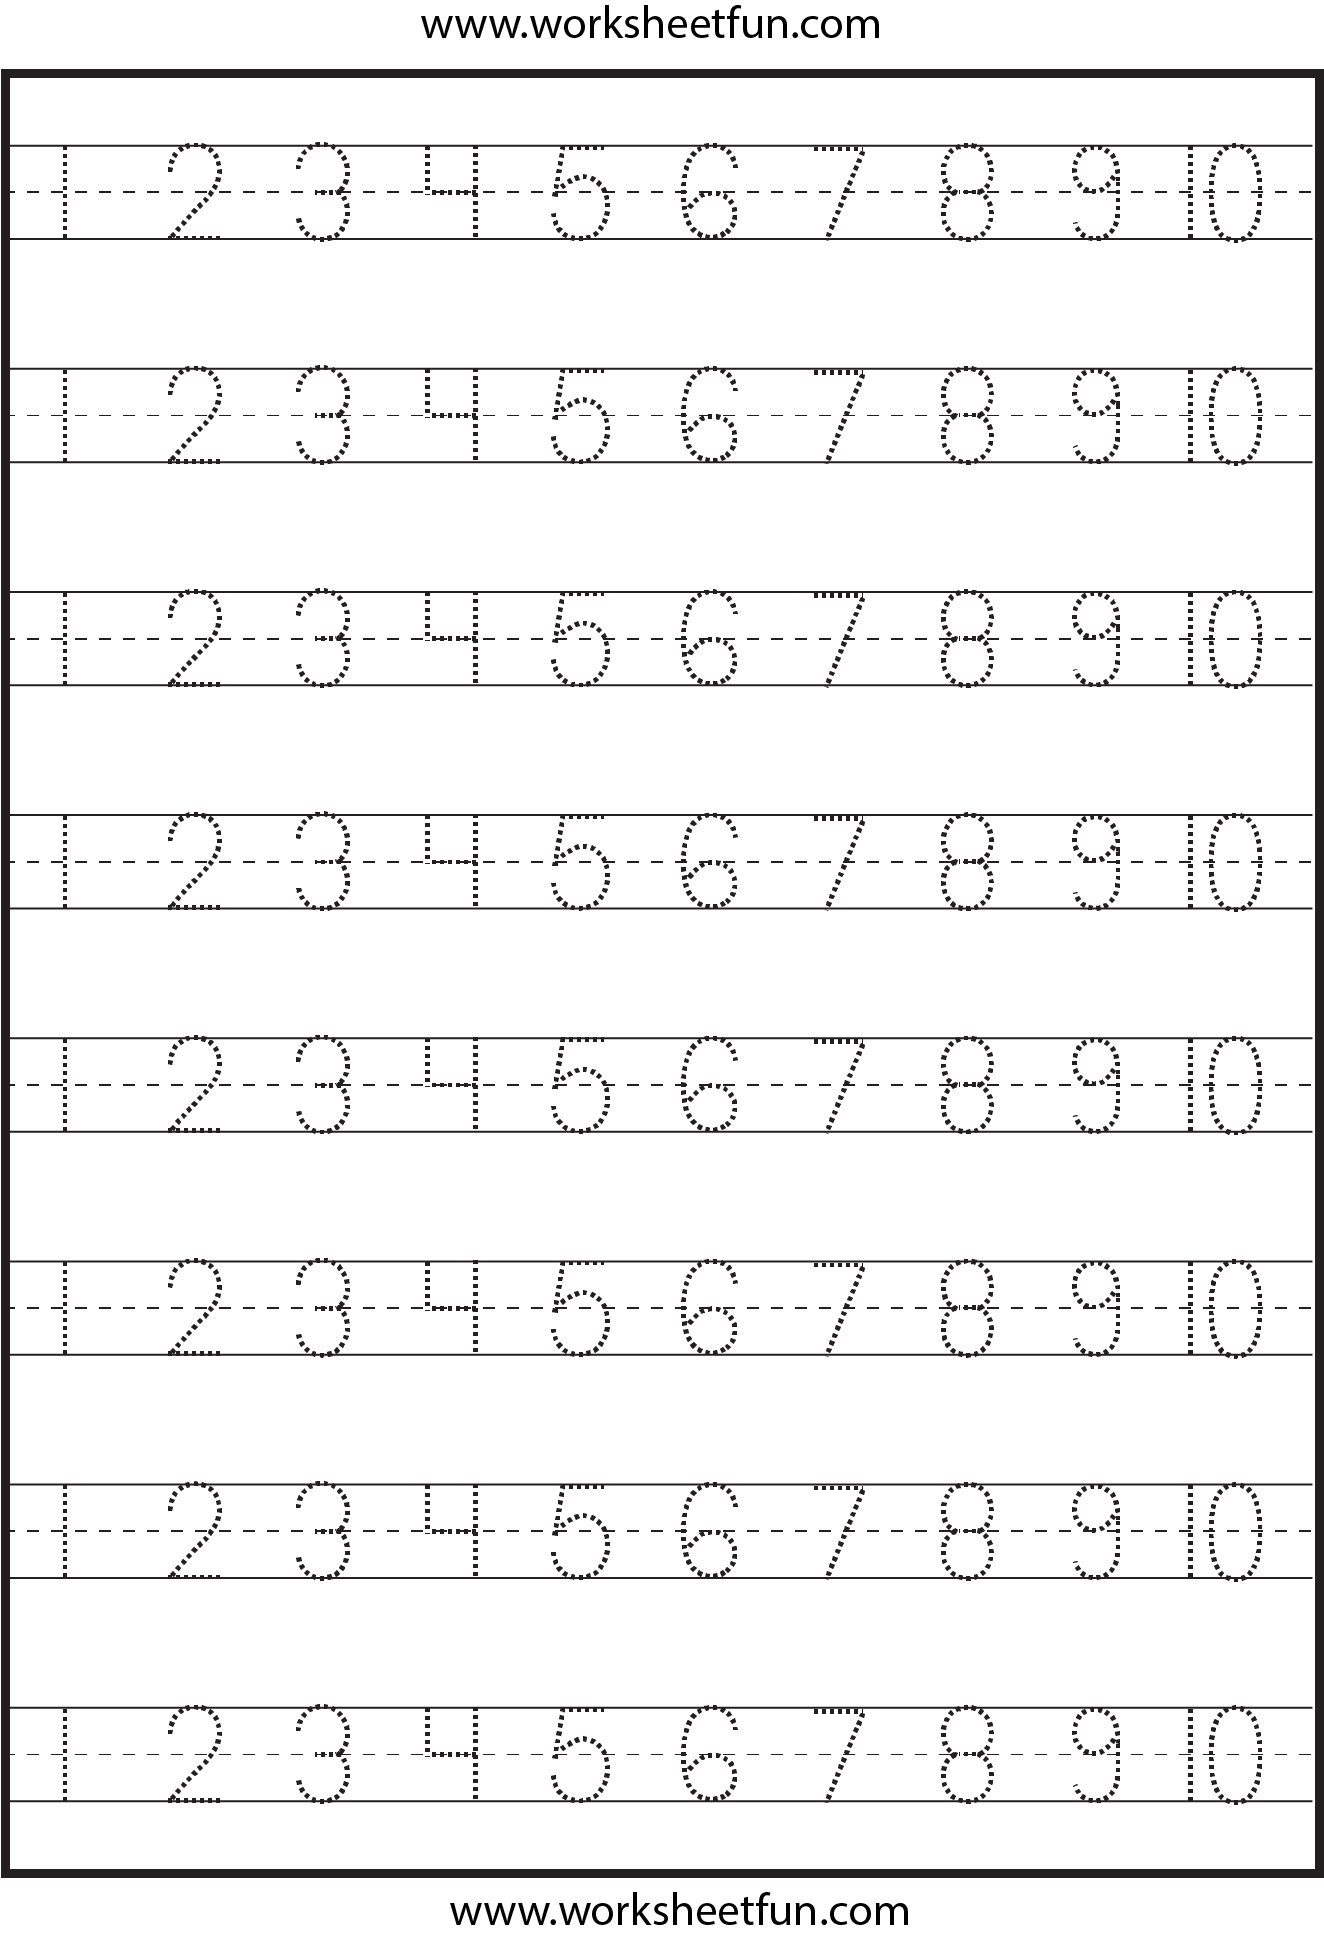 Printables Number Tracing Worksheets For Kindergarten number tracing 1 10 worksheet free printable worksheets tracing